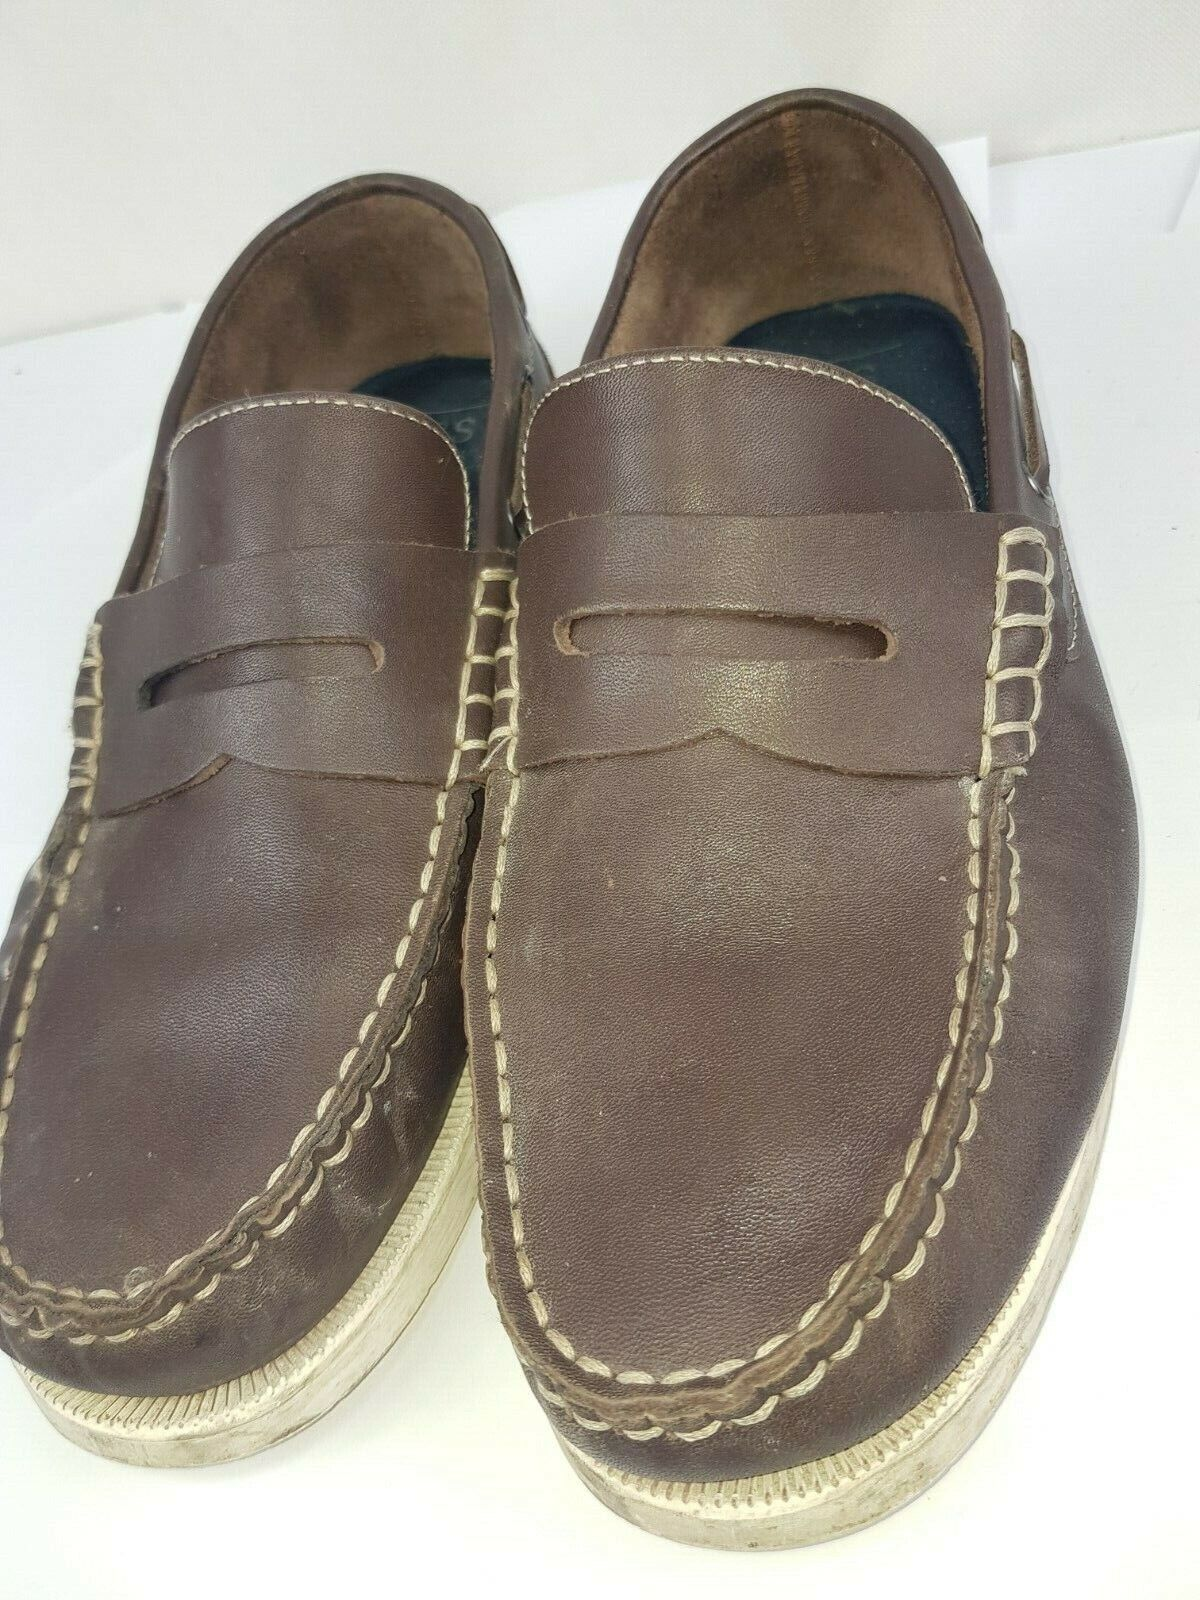 M&S Collection Brown Leather Slip On Boat Deck shoes UK 9.5 - Pre-worn